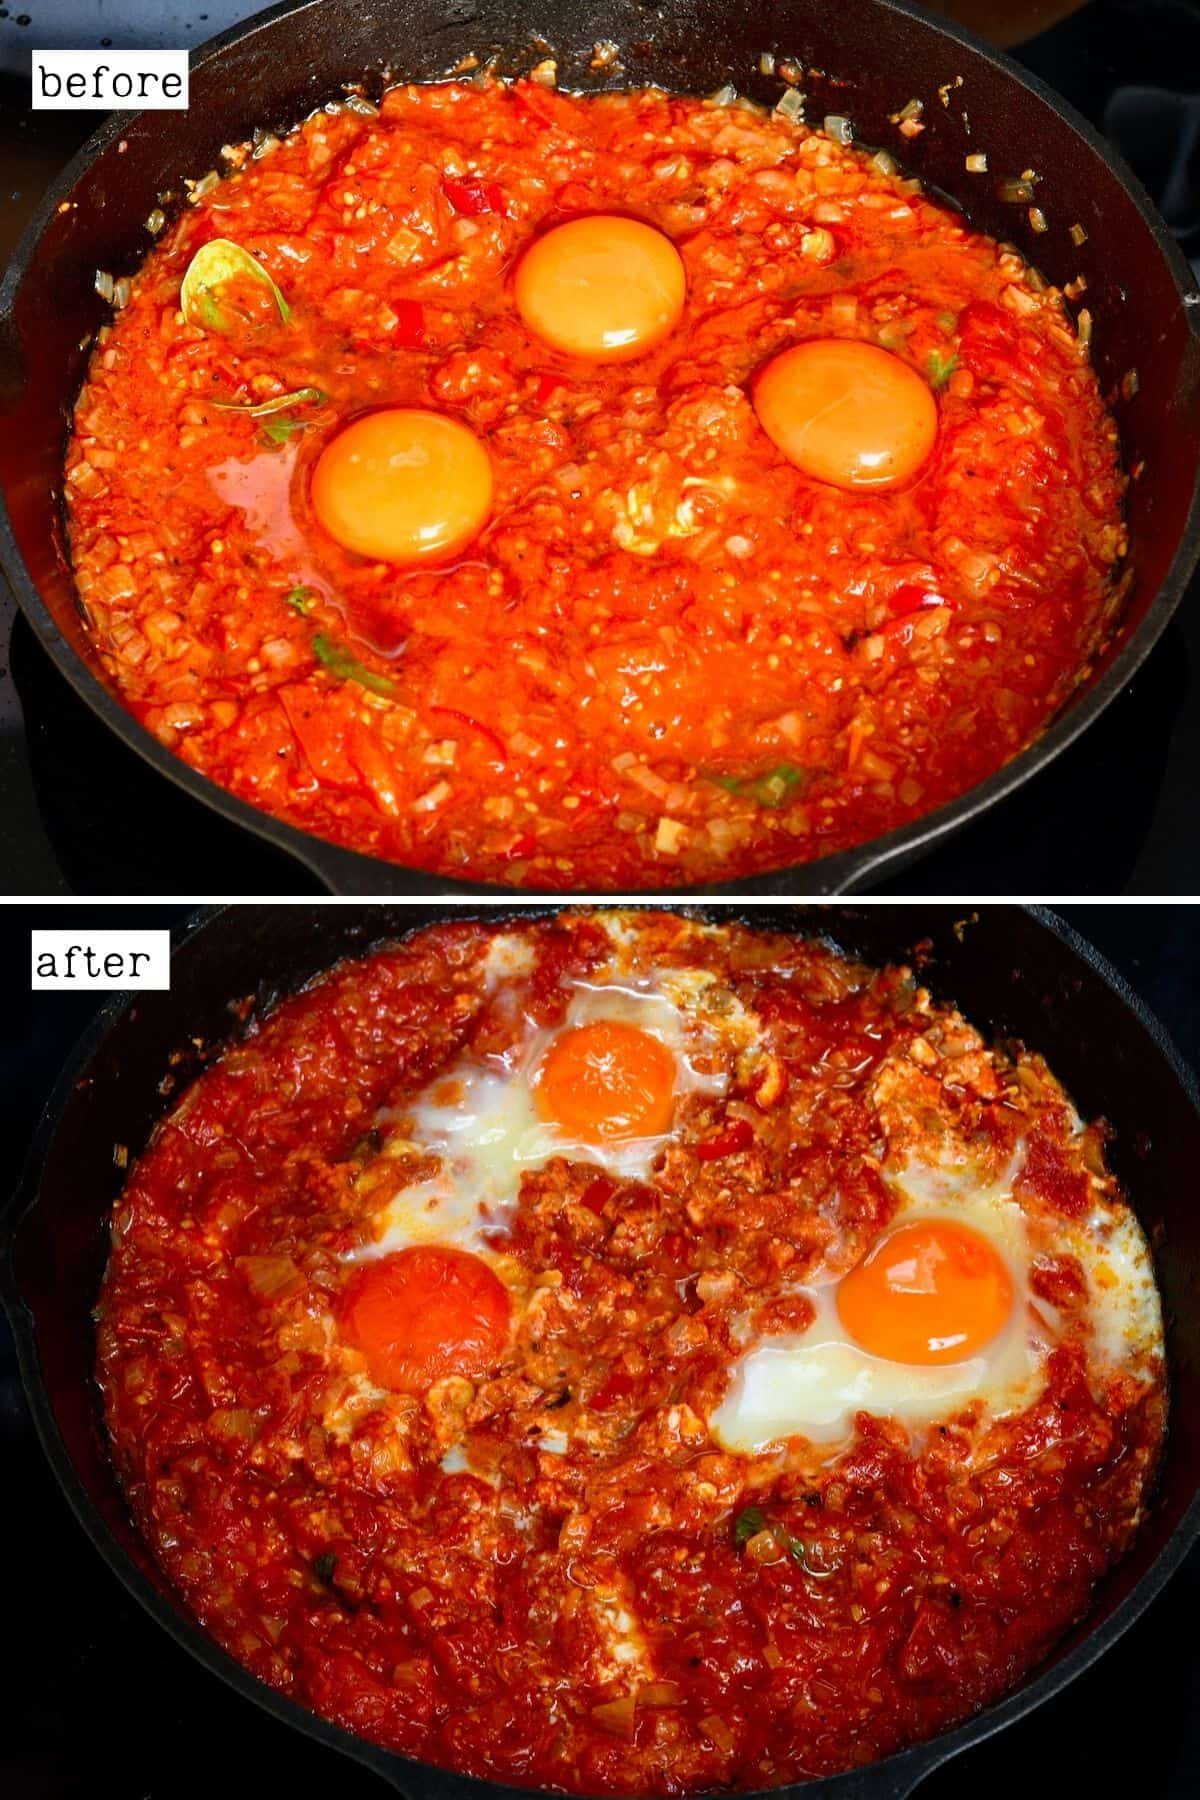 Before and after baking eggs in purgatory